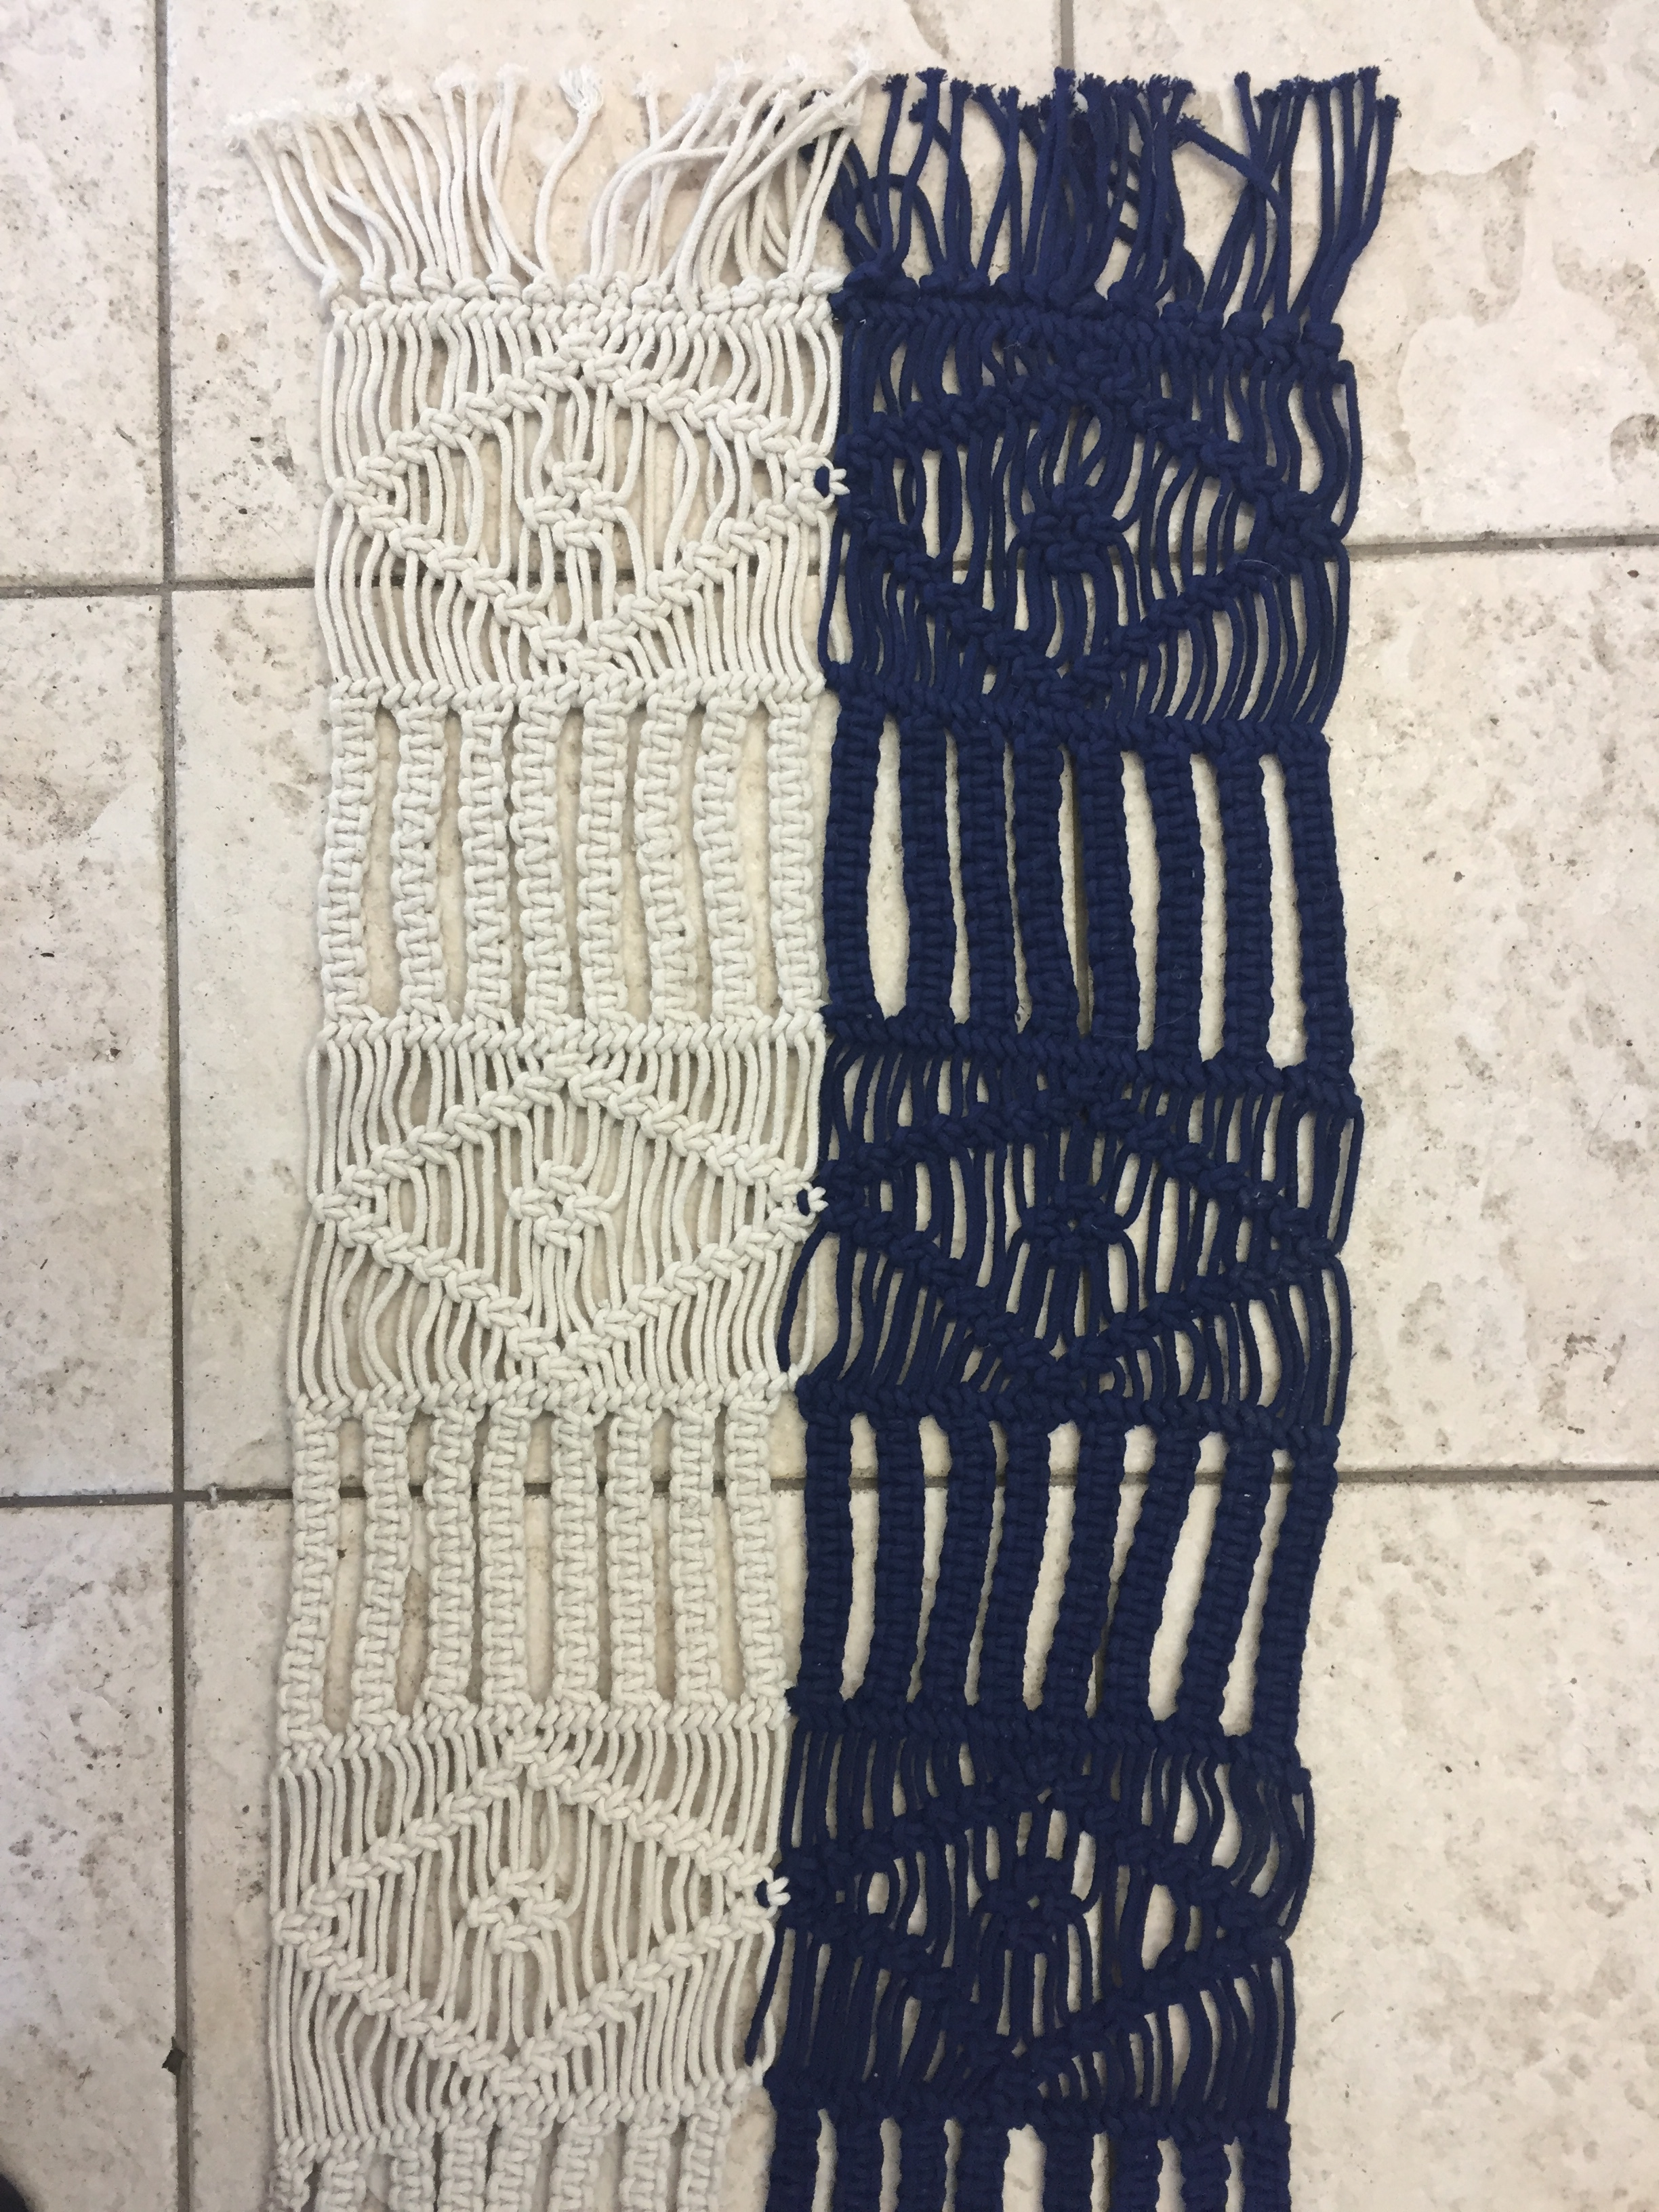 two-toned macrame runner   quantity: 2  PRICE: $10.00